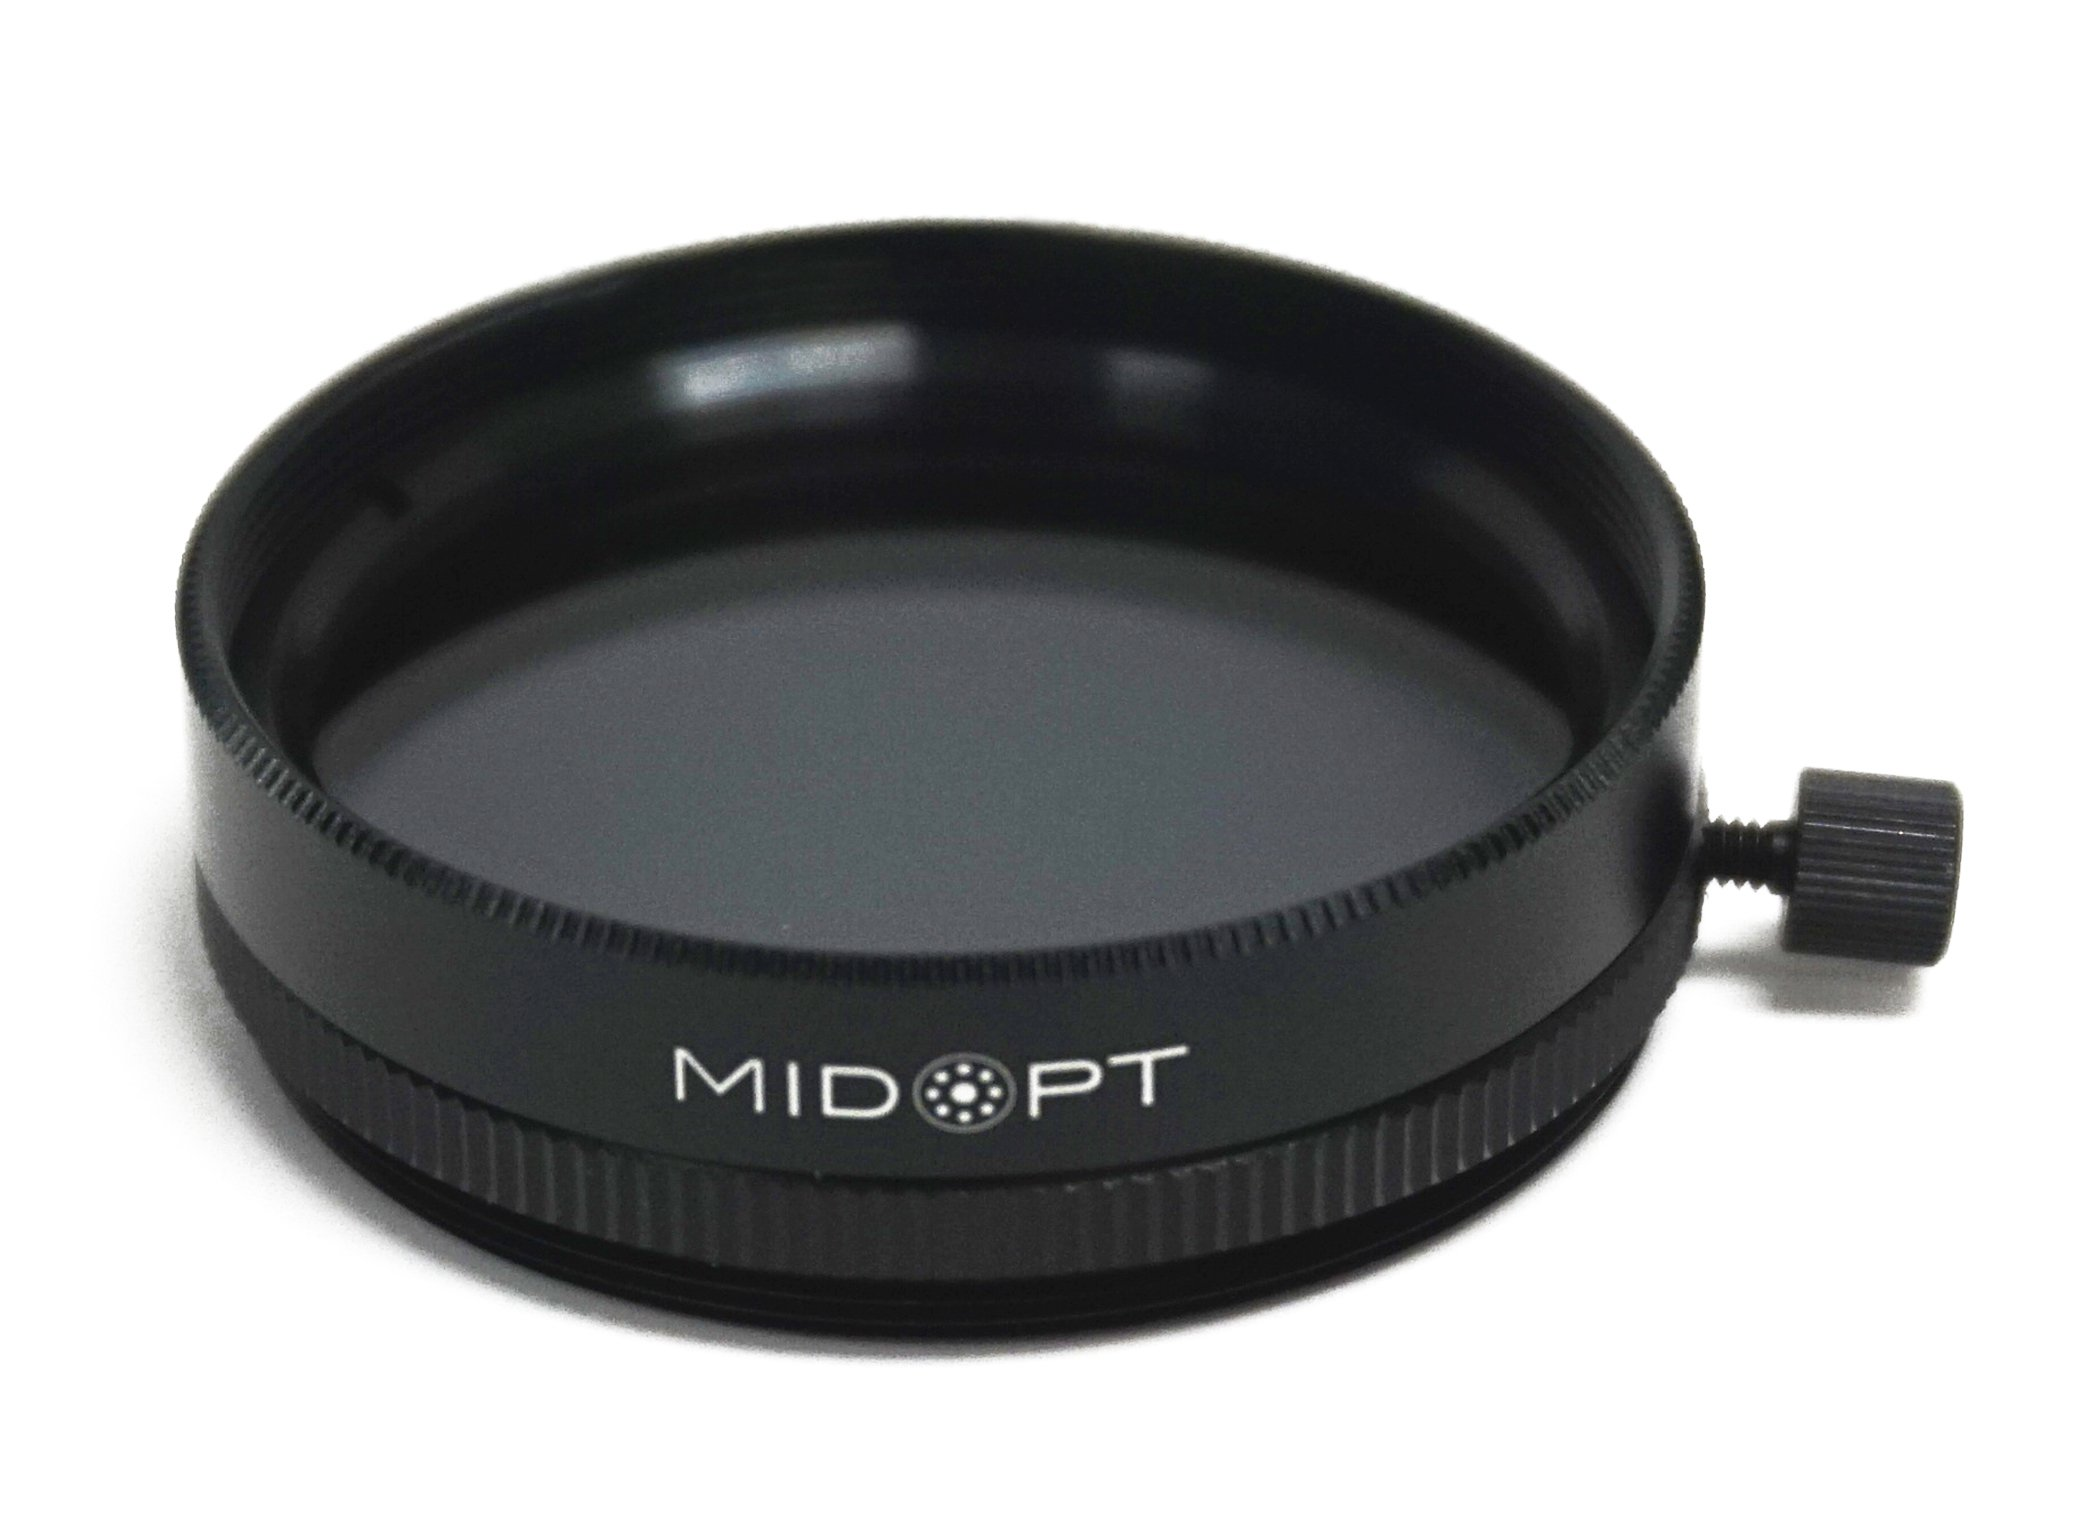 MidOpt Linear Polarizer for Machine Vision, Polarizing Filter, Glare Reduction, PR032-30.5, Fits M30.5 Lens Filter Thread